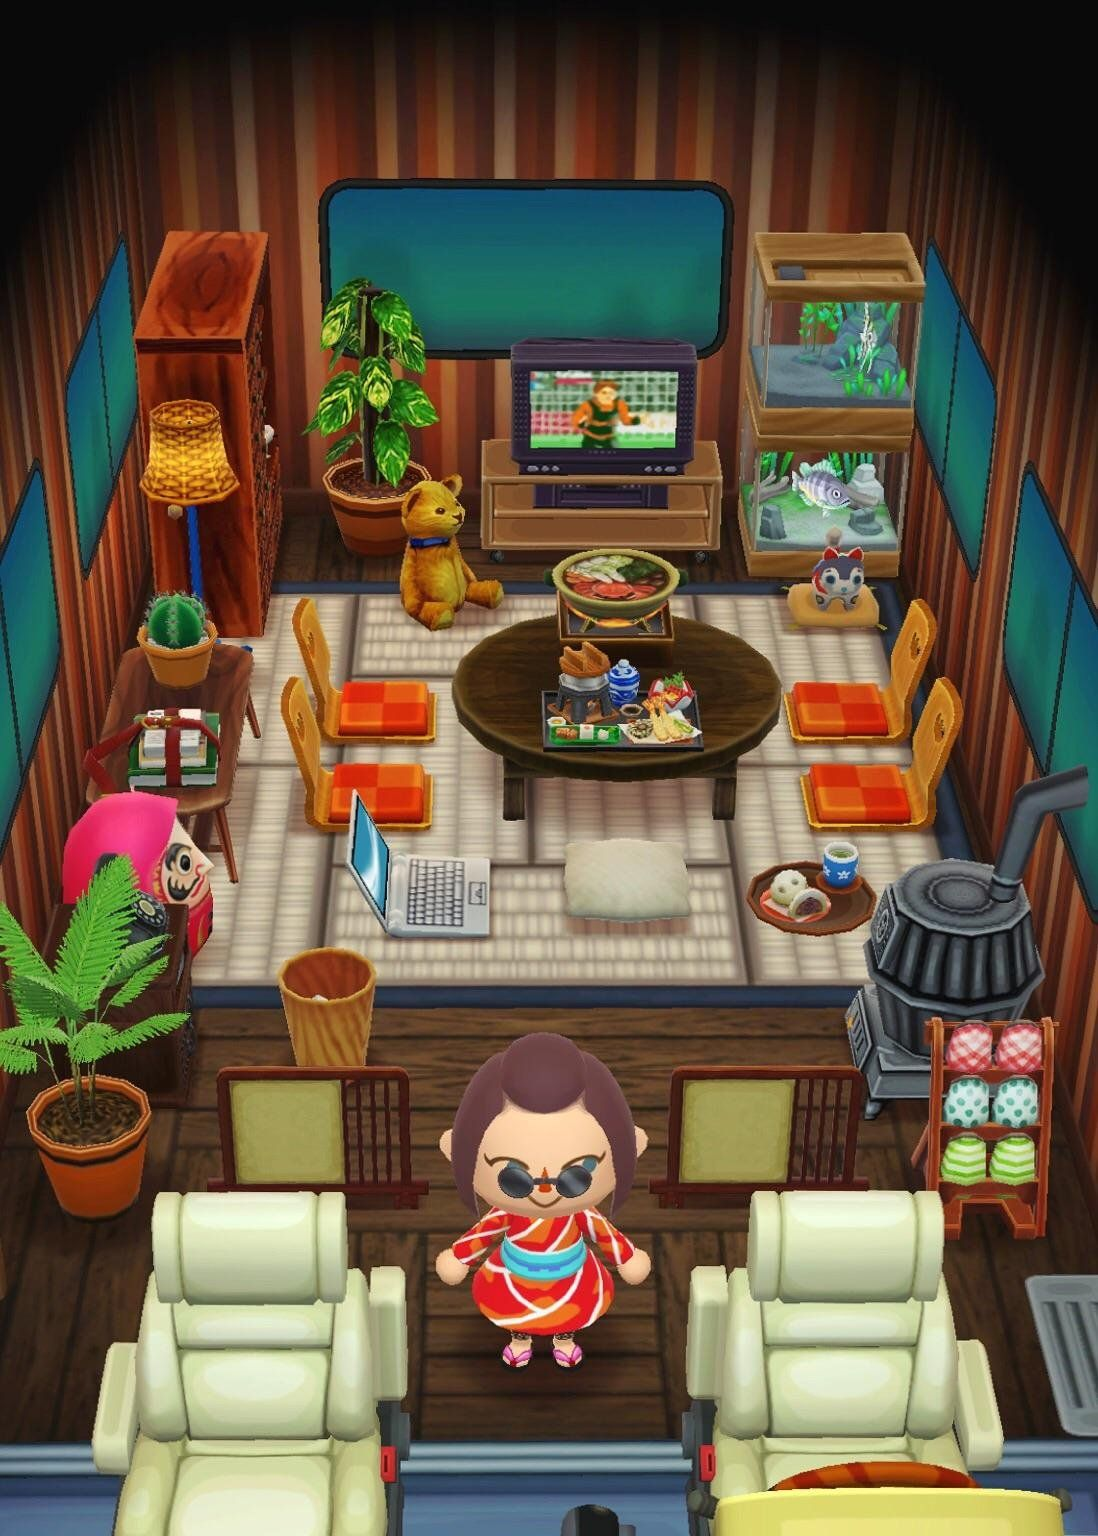 Super Proud Of My Japanese Style Camper 3 Acpocketcamp Japanese Animals Animal Crossing Pc Animal Crossing Pocket Camp